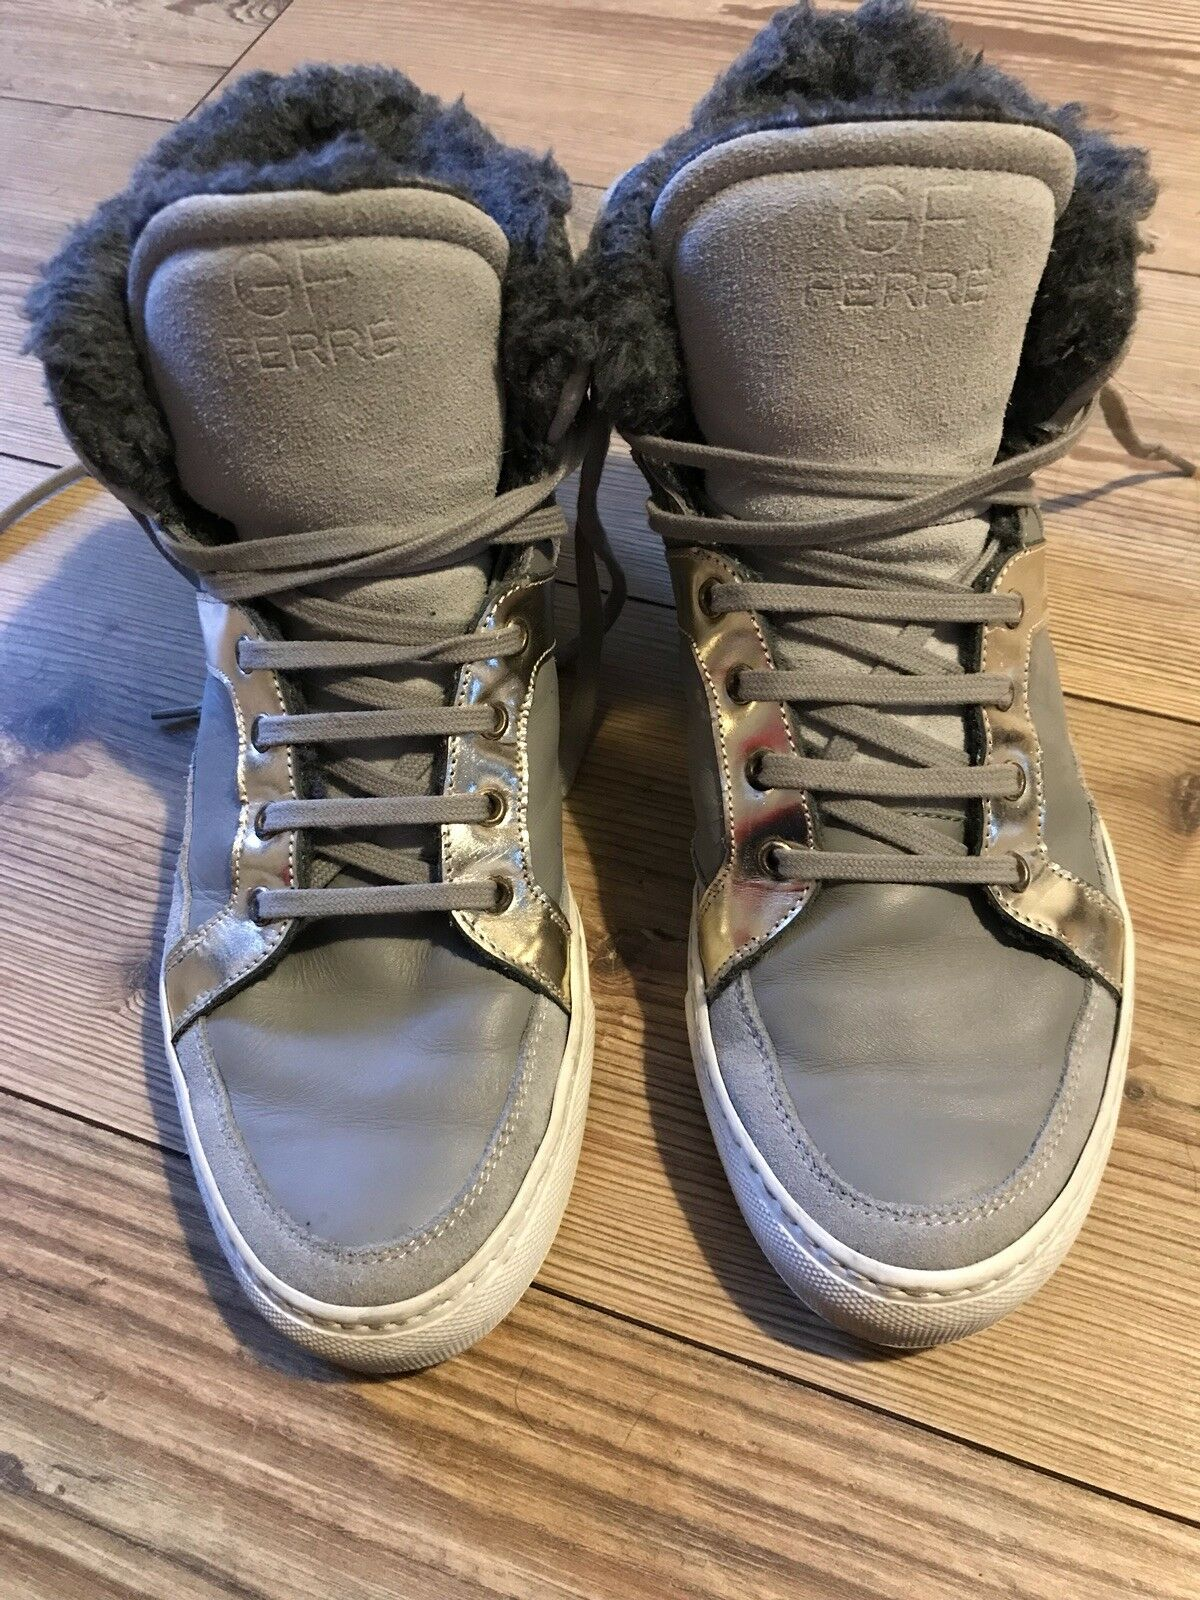 Luxury GF Gianfranco Ferre Hi Top Trainers Sneakers UK 6 EU 39